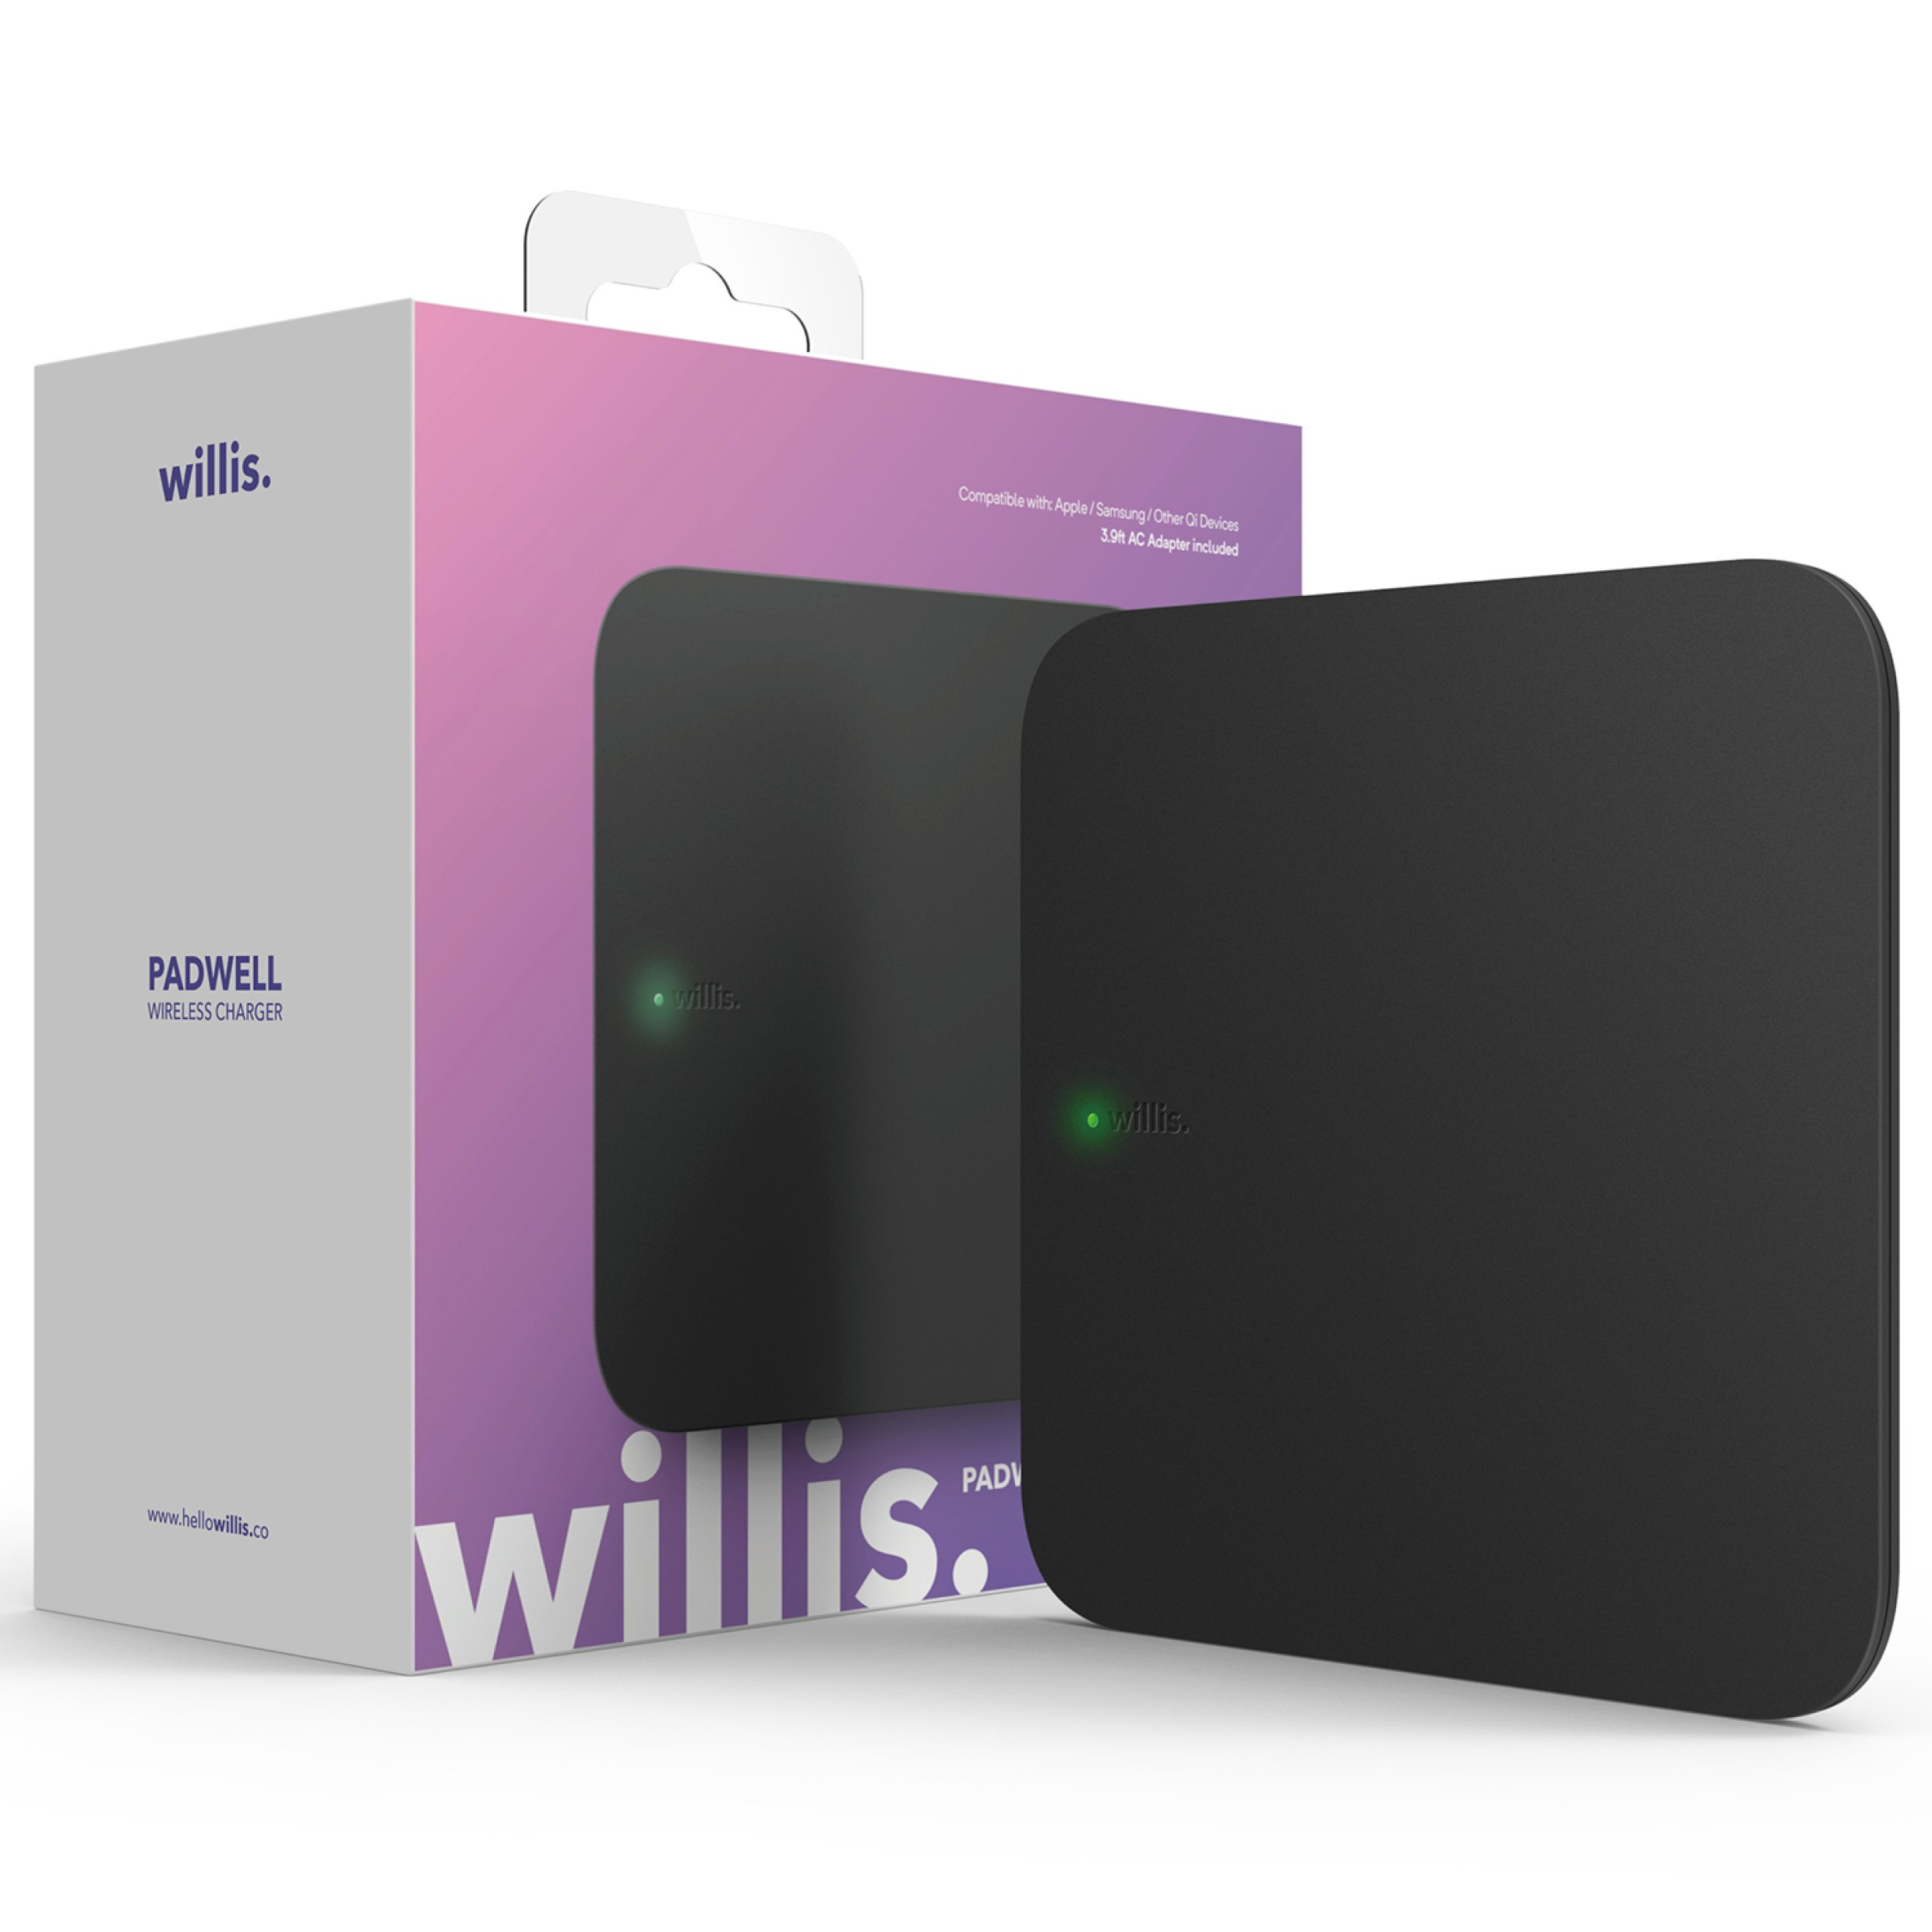 Willis Padwell Fast Wireless Charger [Qi Certified Charging Pad] - 7.5W for iPhone X, 8, 8+ / 10W for Galaxy S9, S9+, S8, Note8 & all Qi-Enabled Android Devices (Adapter Included) - Black 11x11x1.7